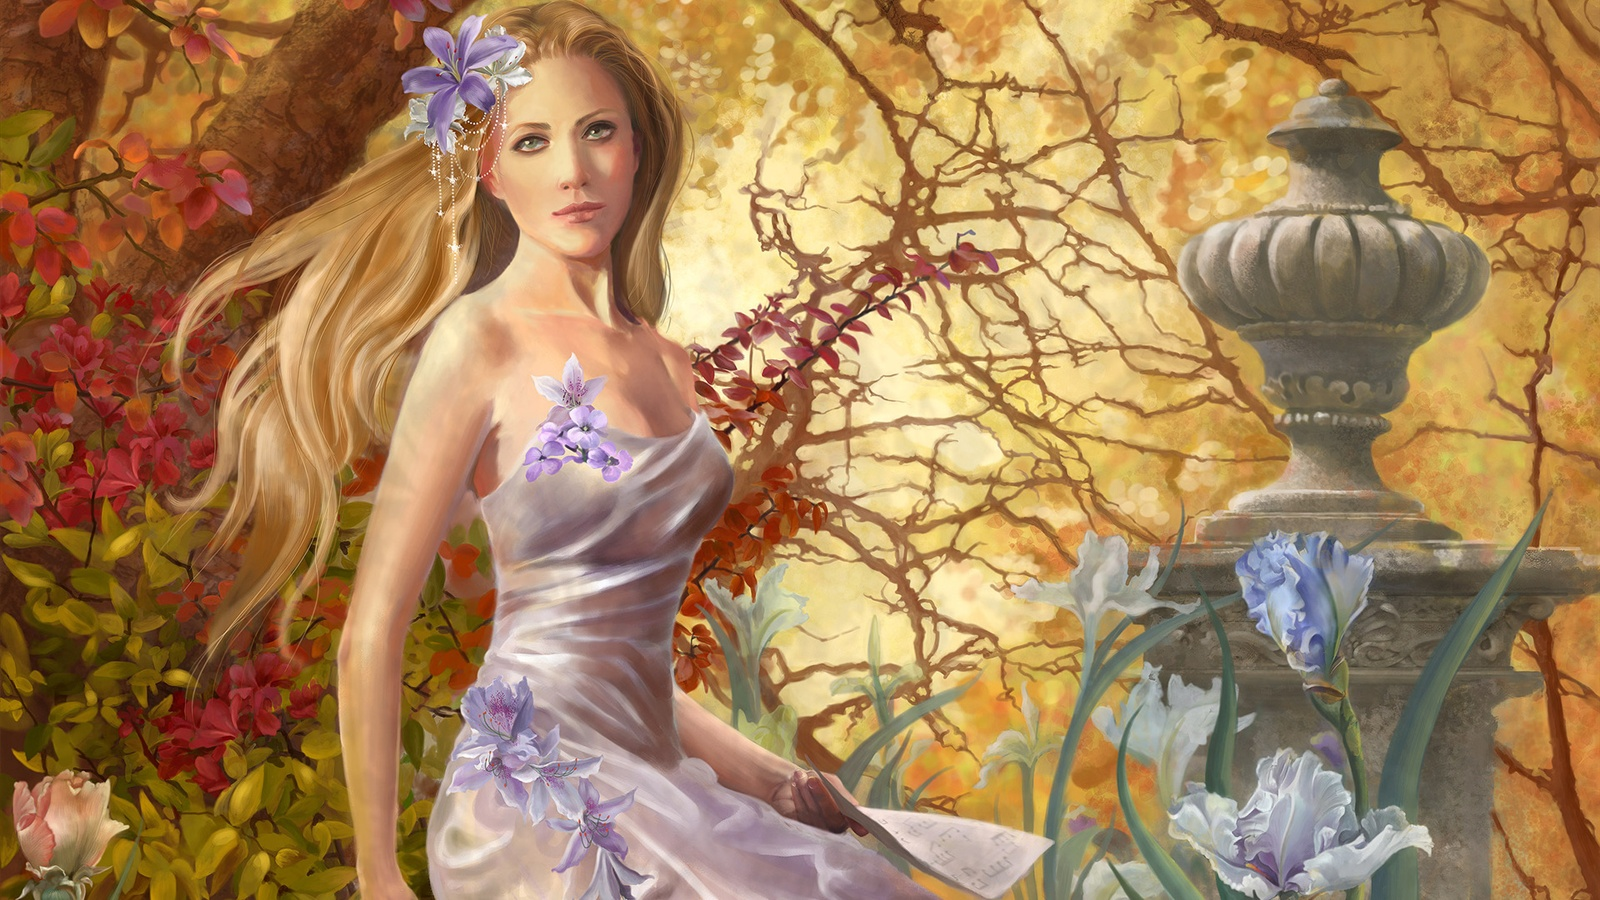 Fantasy girl in the park wallpaper - 1600x900